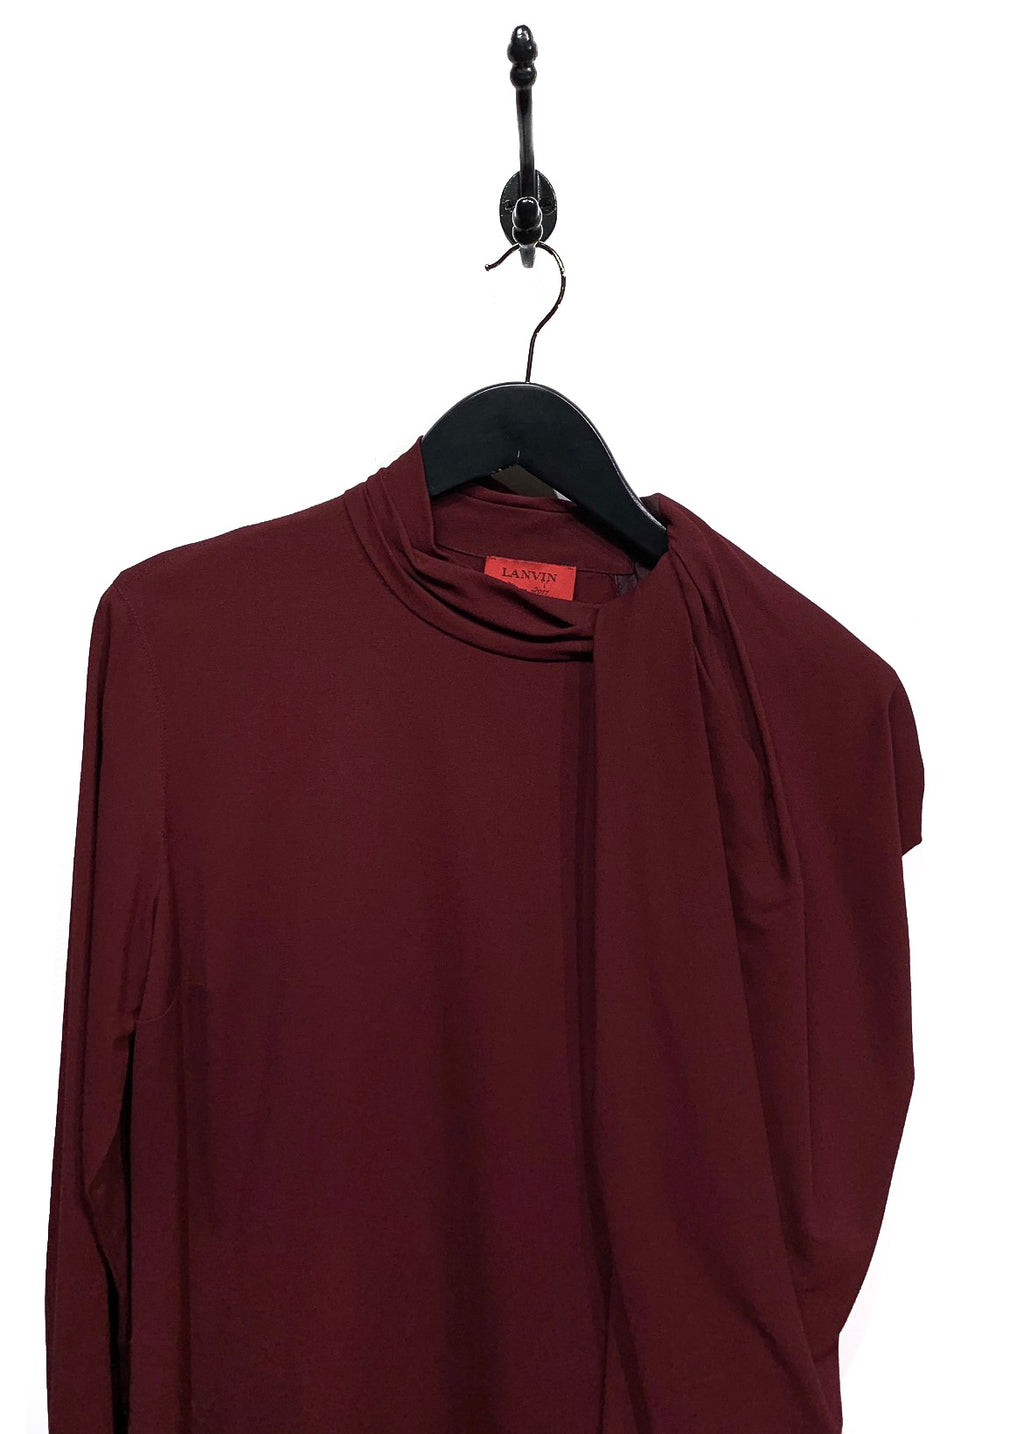 Lanvin FW11 Burgundy Gathered Sleeve Zipper Detail Dress